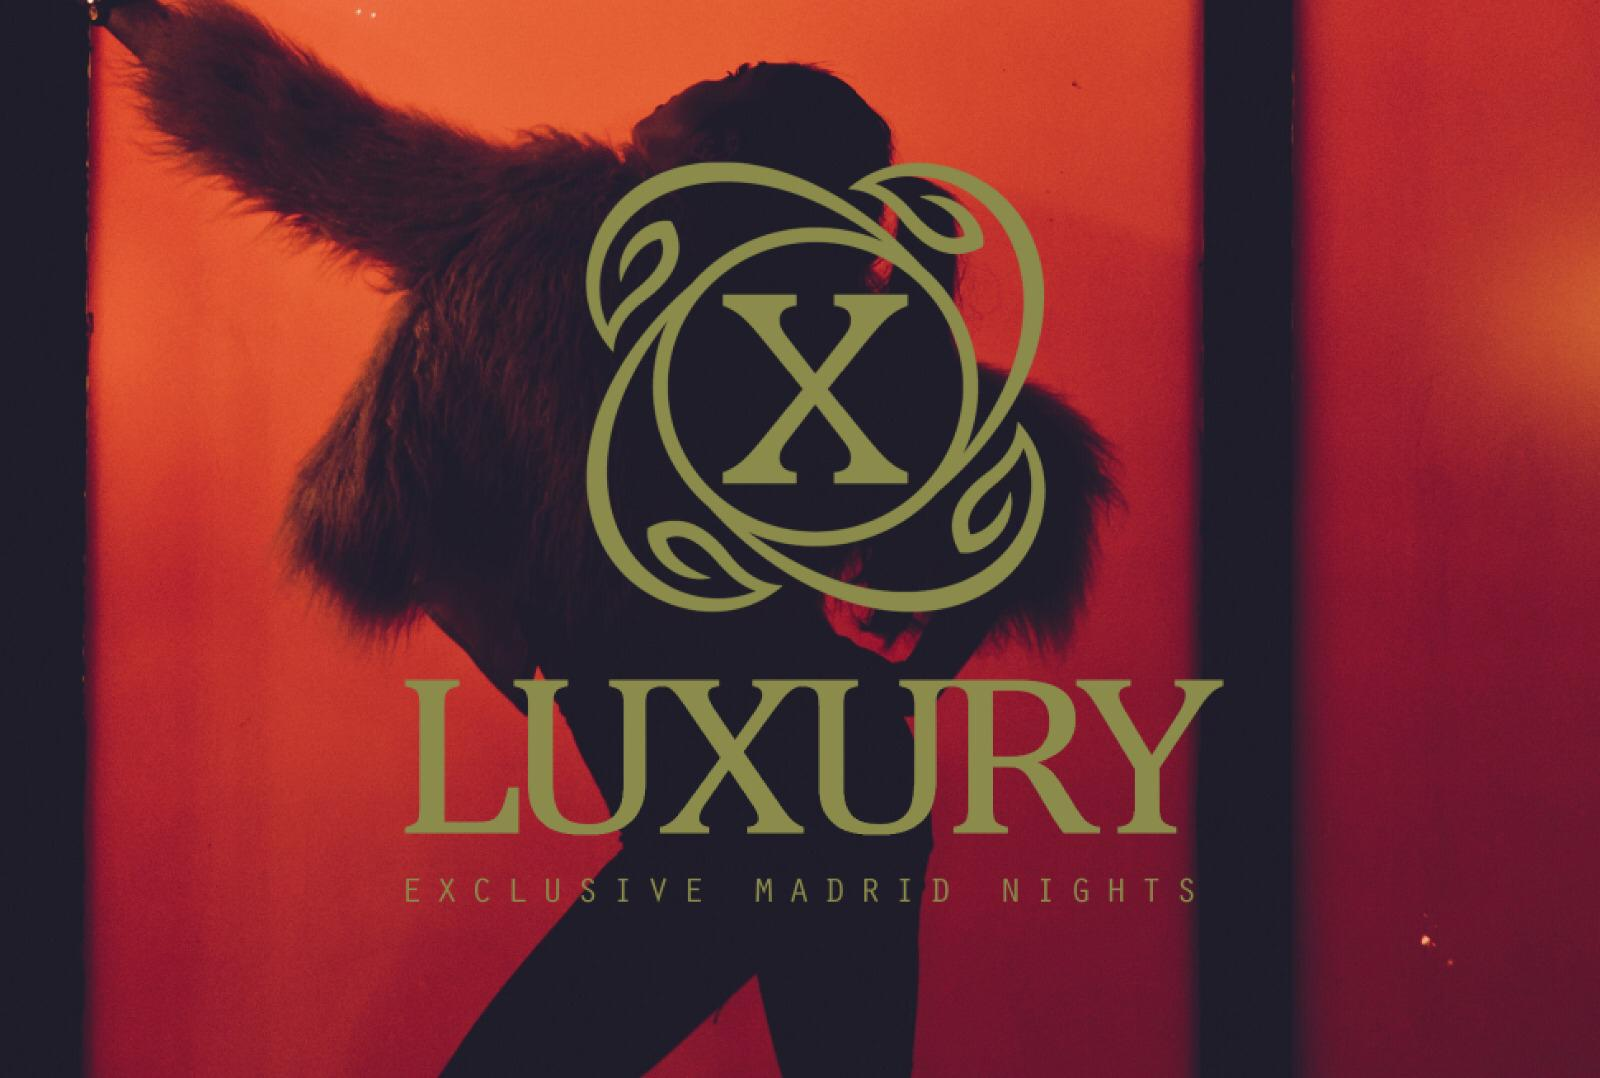 Luxury - Club Luxury Nightclub